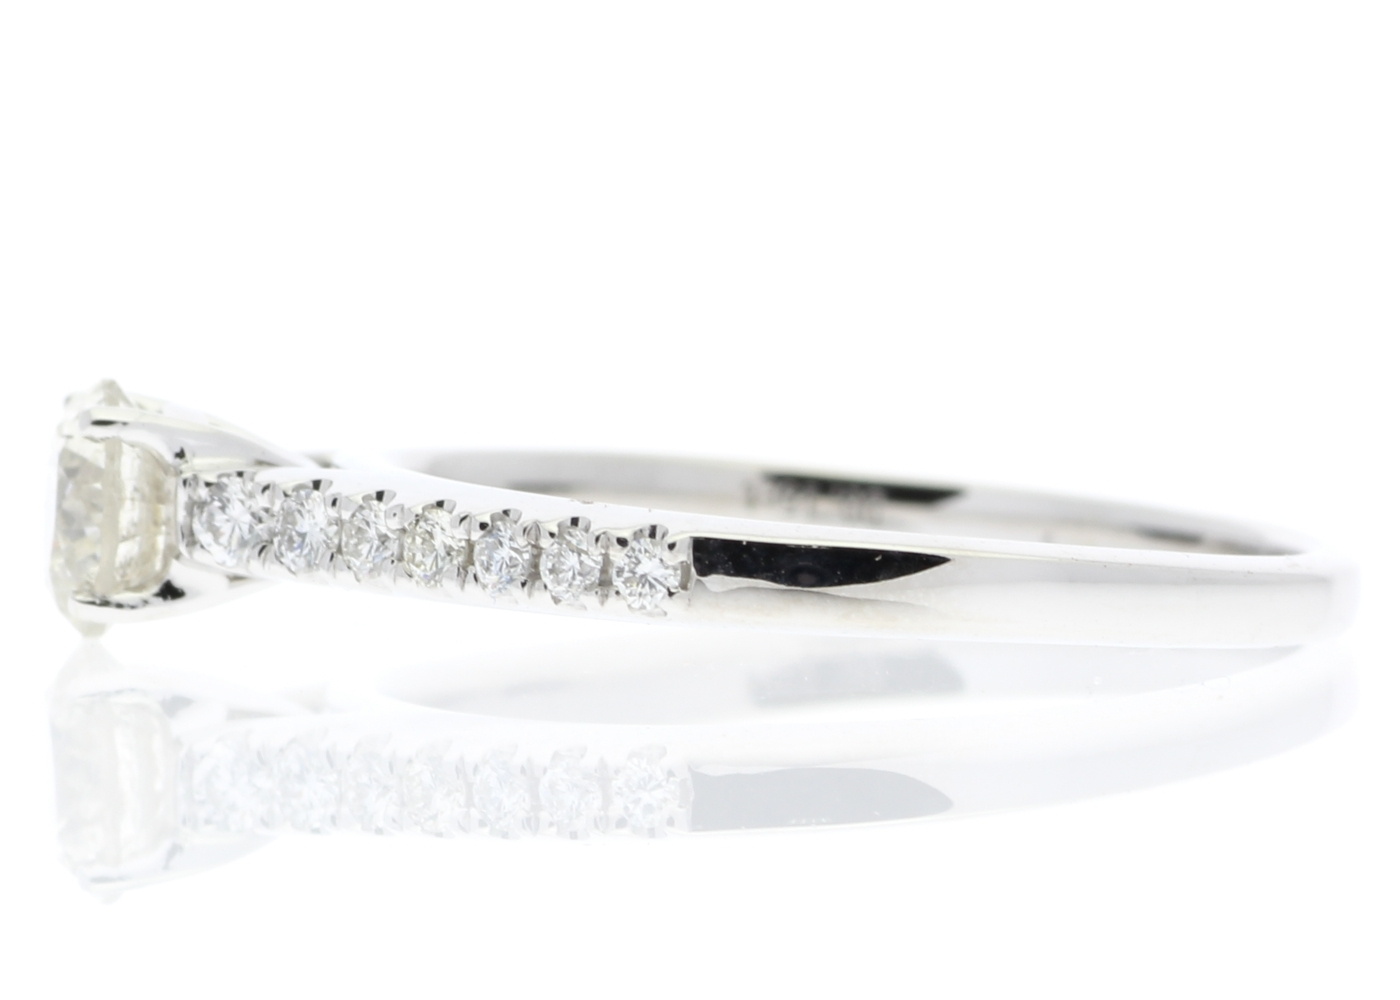 18ct White Gold Single Stone Claw Set With Stone Set Shoulders Diamond Ring (0.46) 0.61 Carats - Image 3 of 5